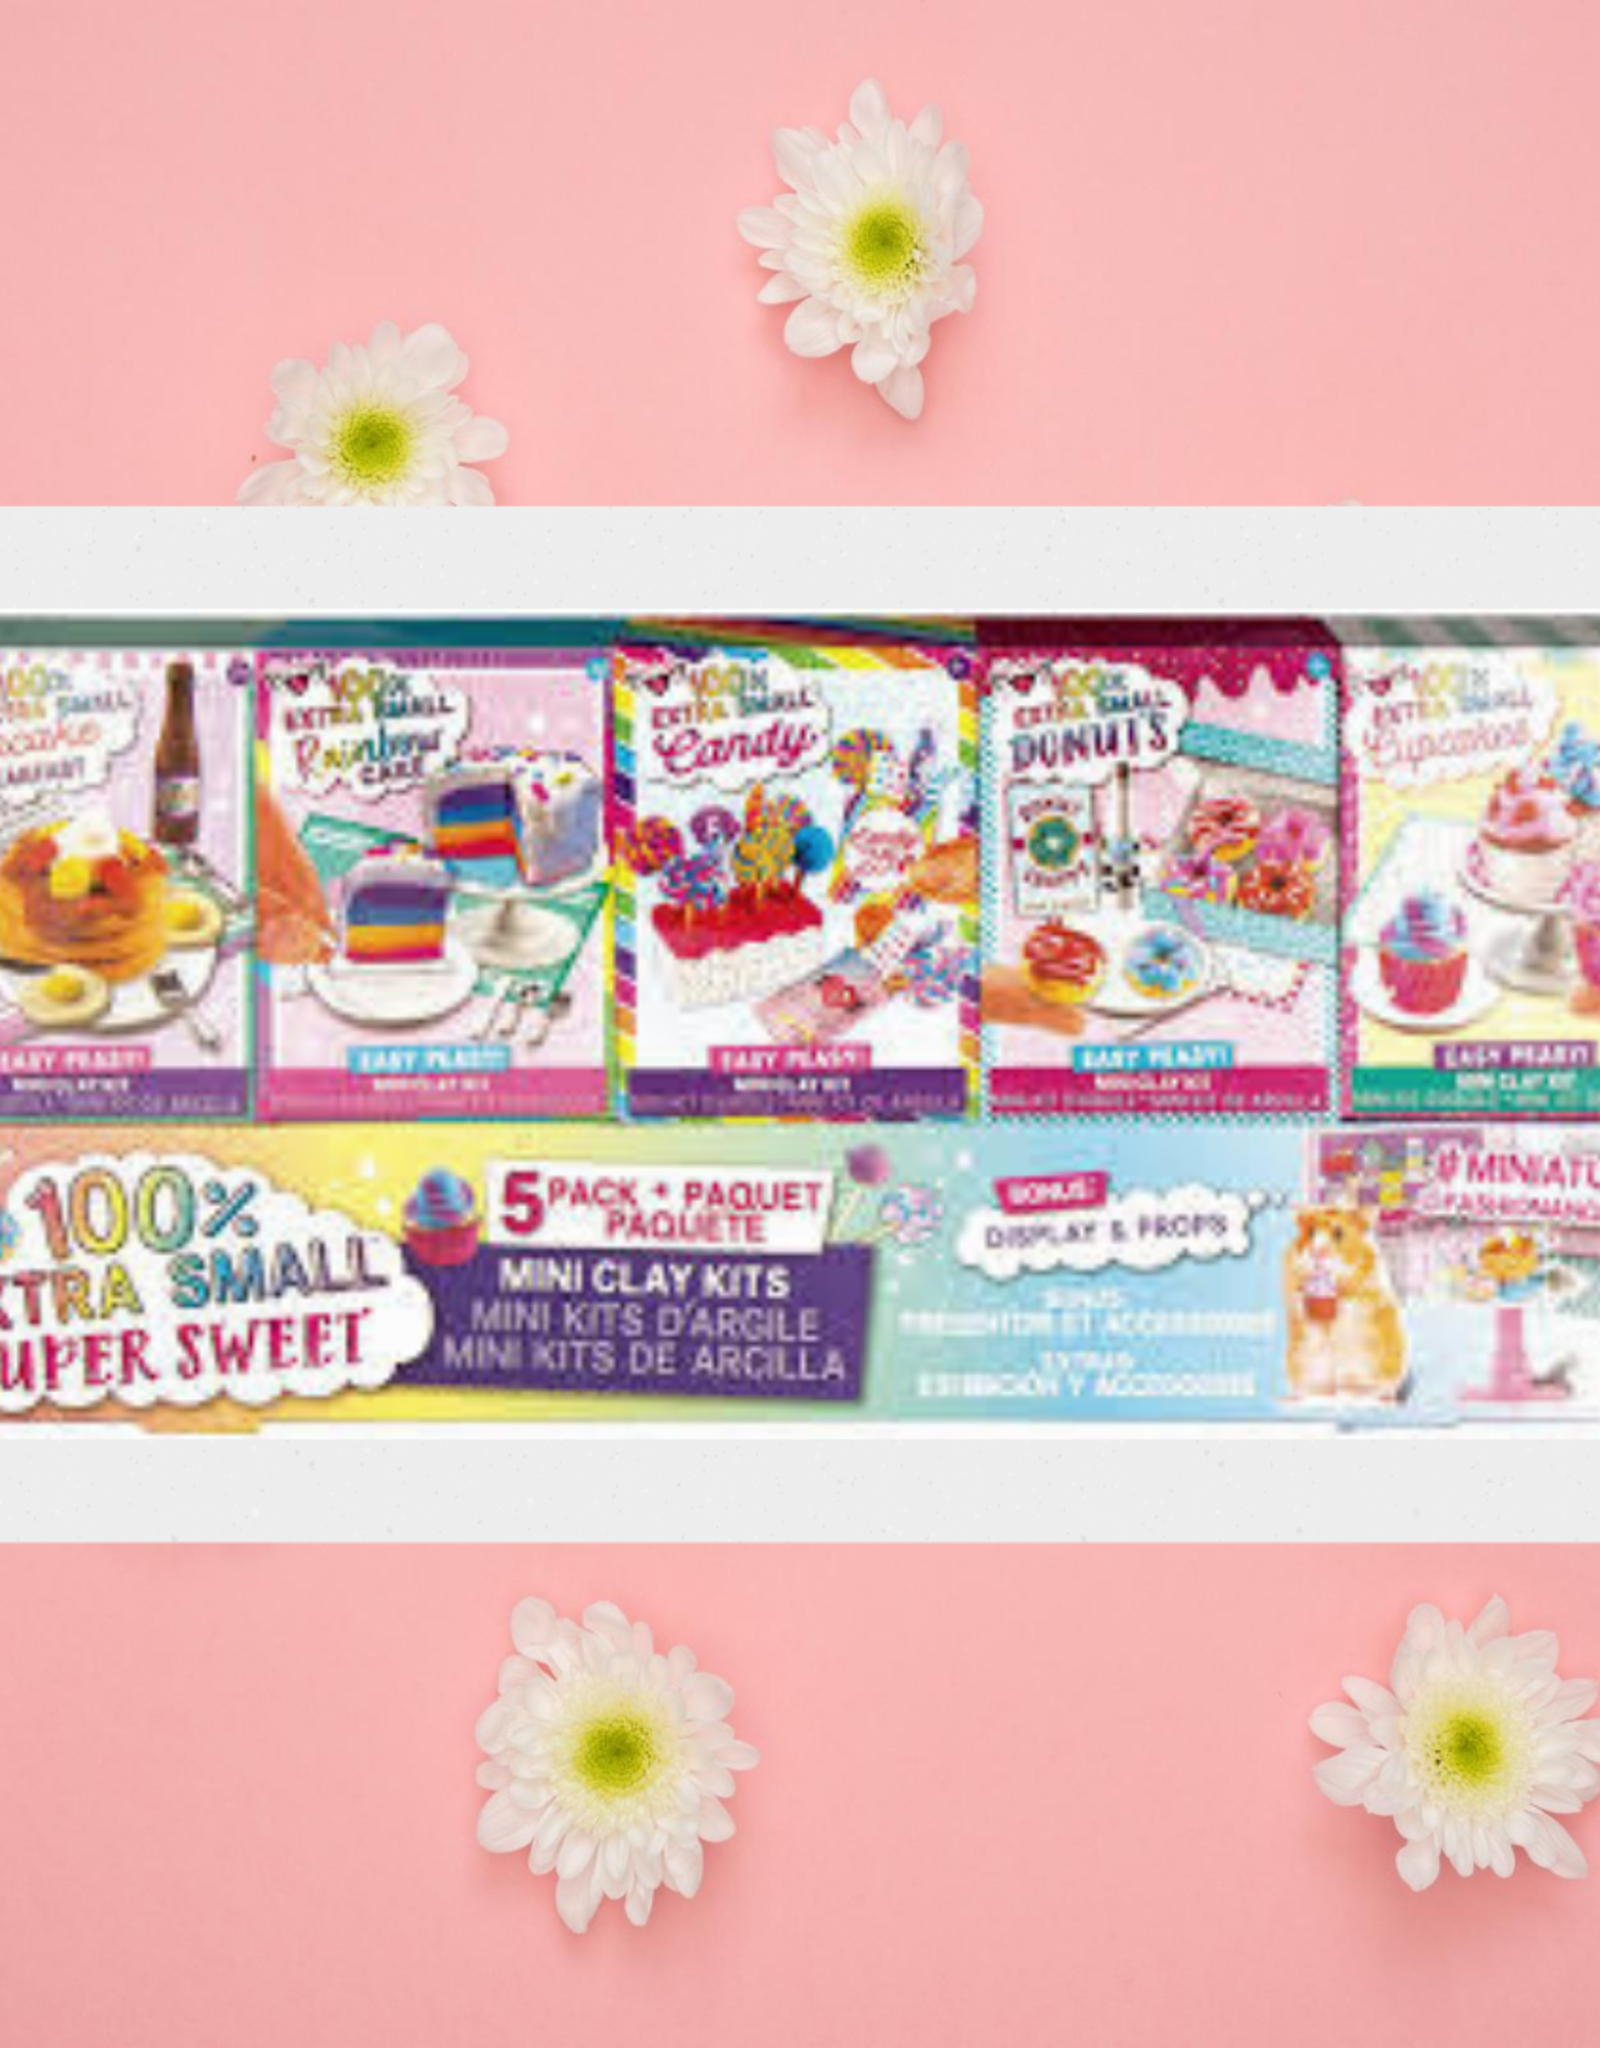 SWEETS MINI CLAY 5 PACK